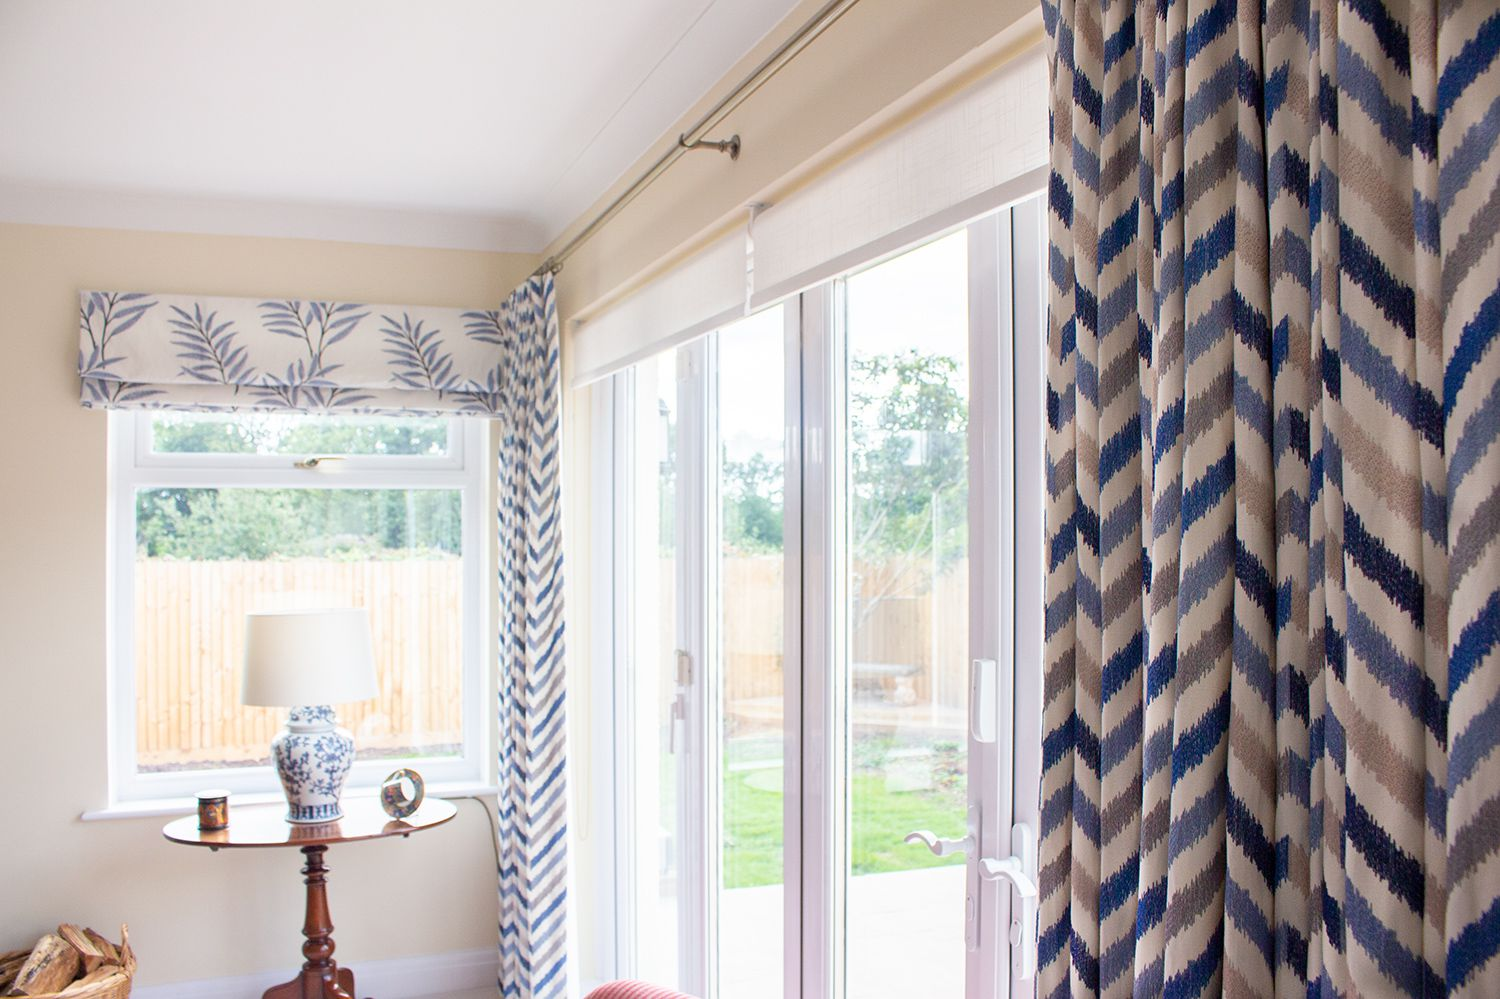 A view of the new blue patterned curtains and Roman blind in a coordinating fabric.